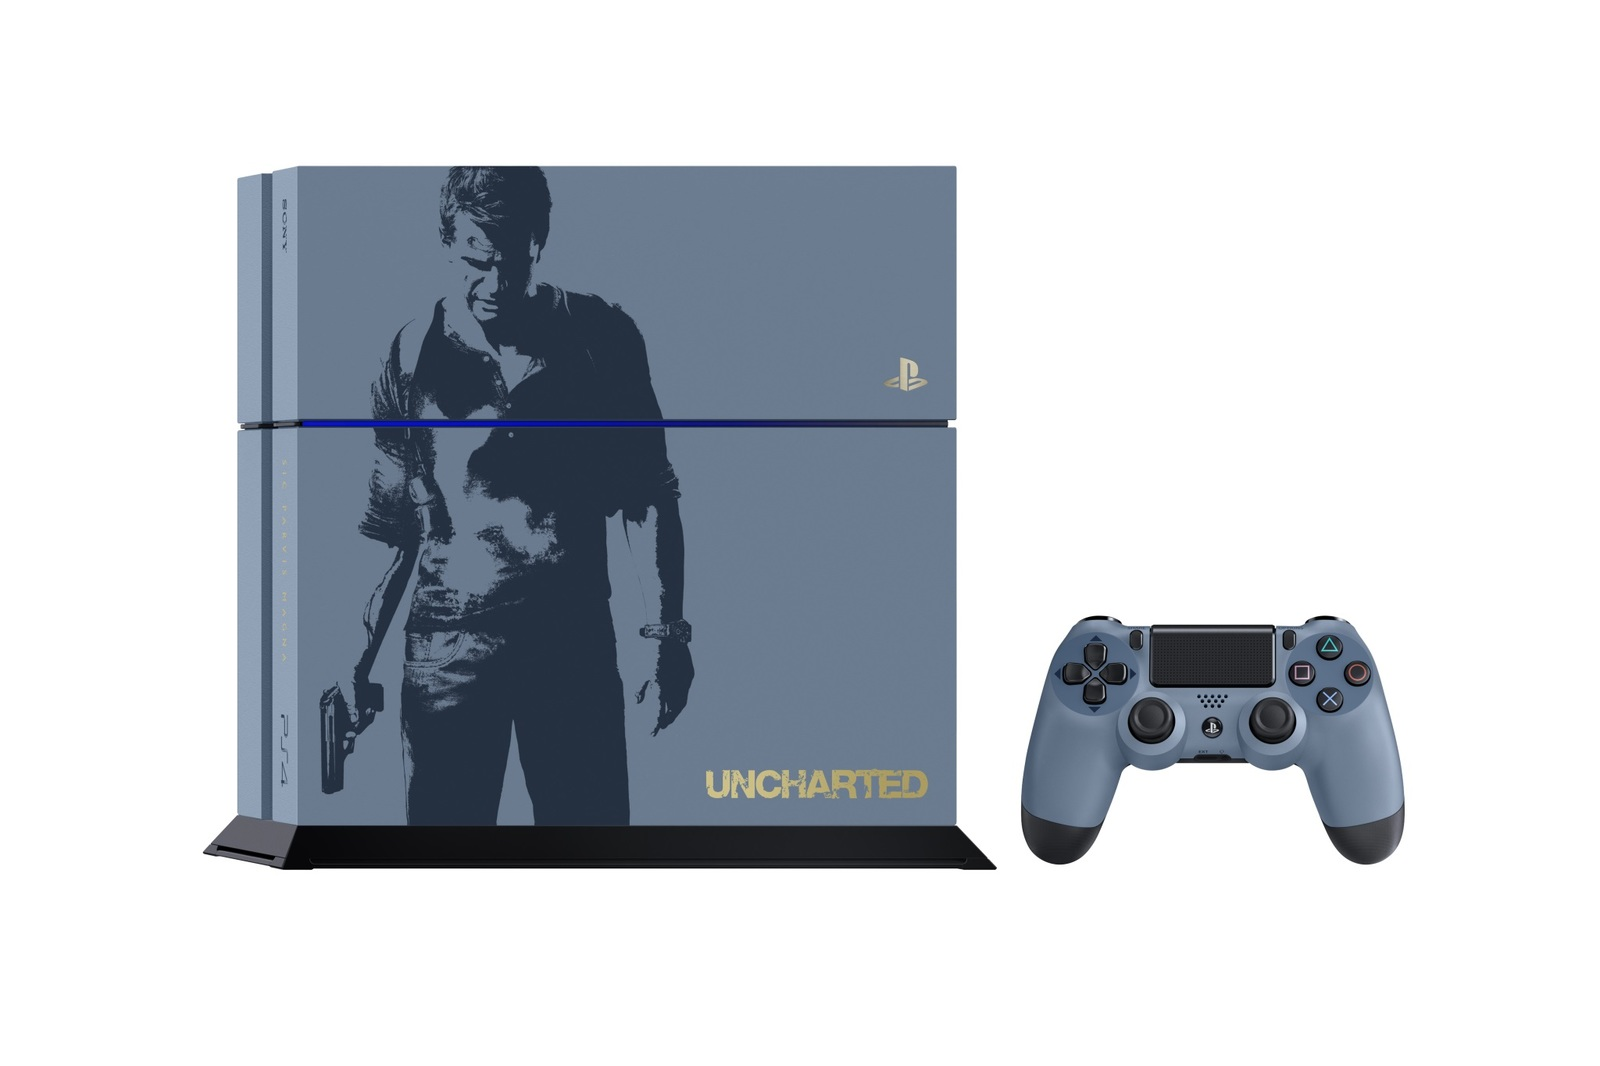 Ps4 Uncharted 4 Limited Edition Console Bundle